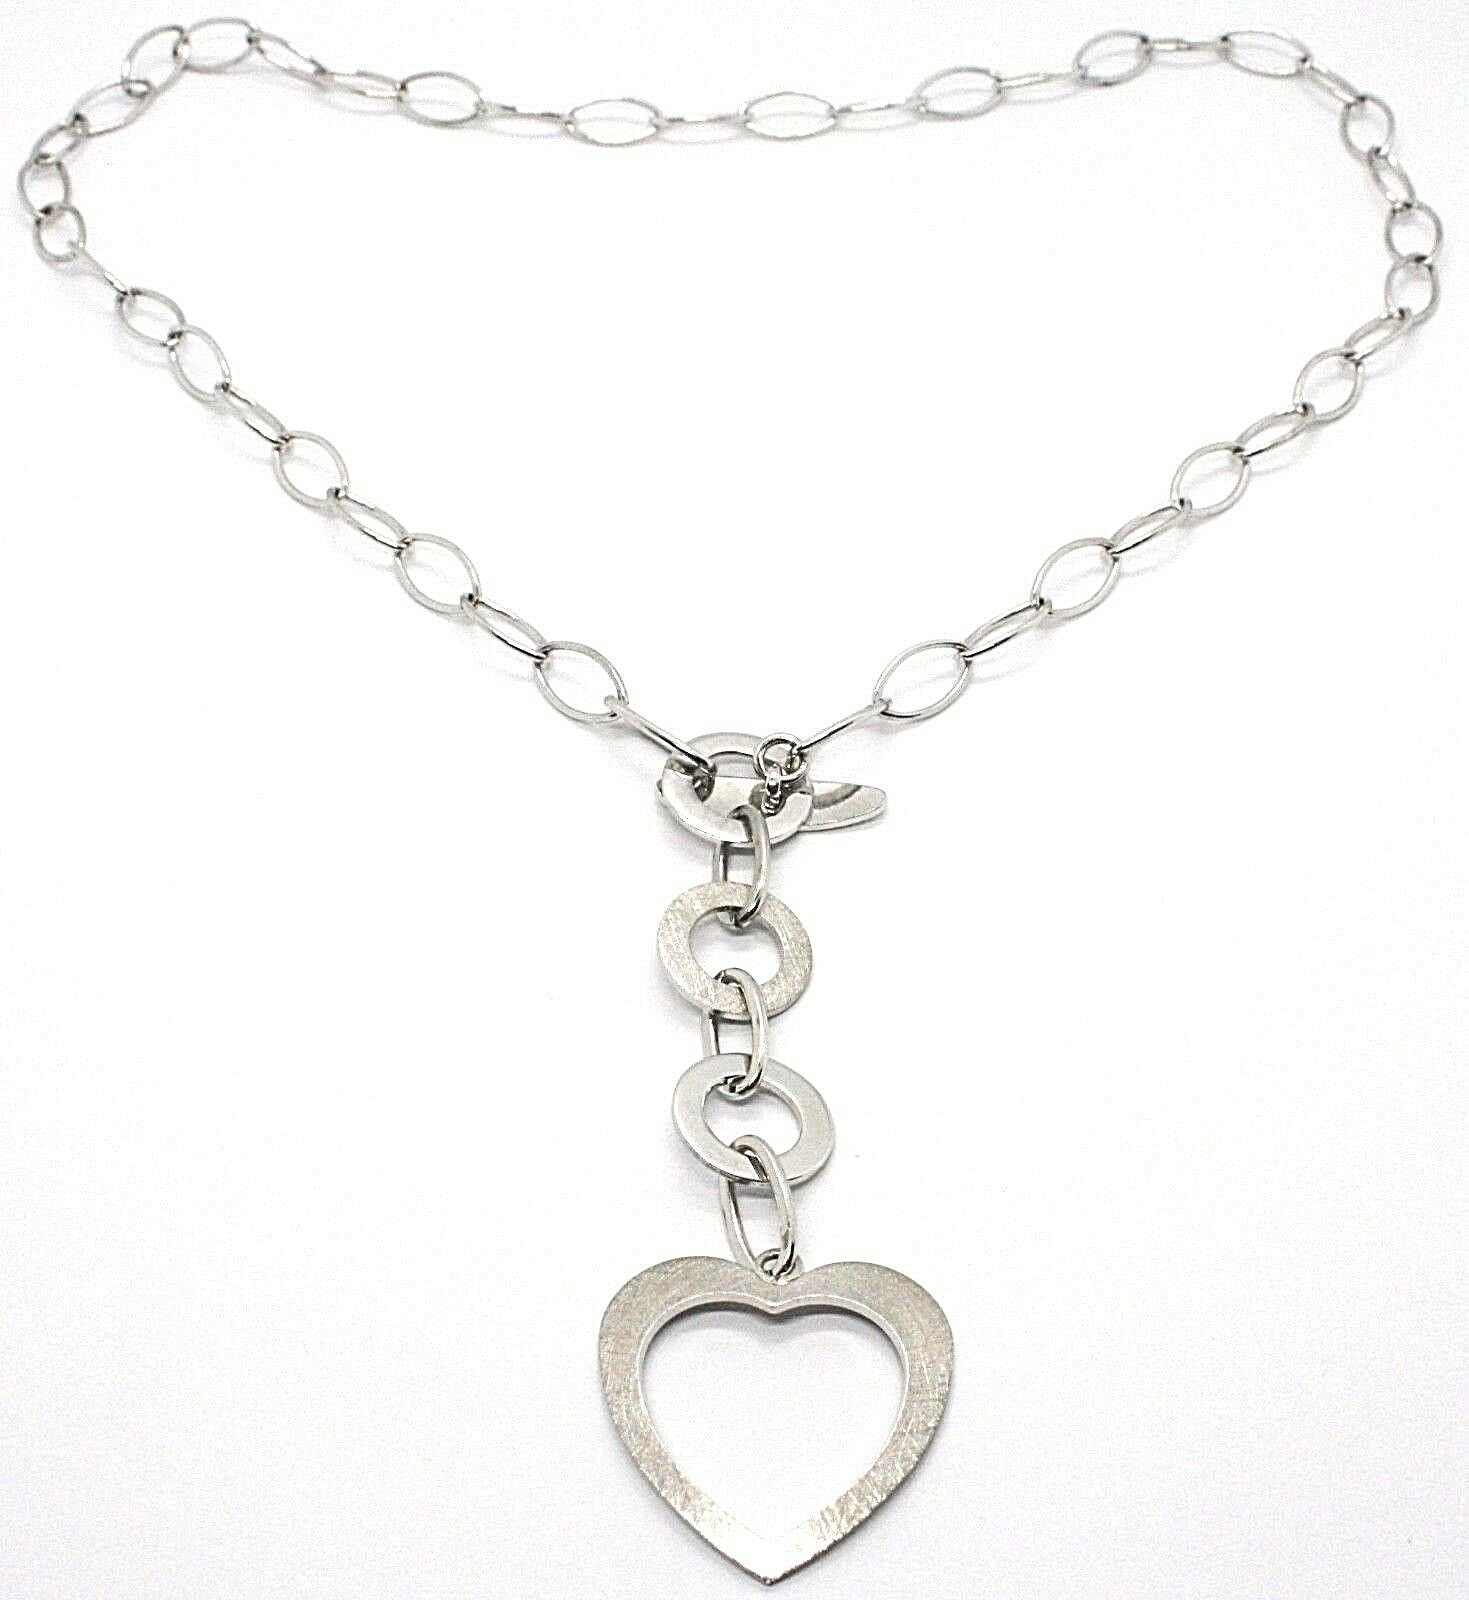 Necklace Silver 925, Chain Oval, Circles and Heart, Hanging, Satin